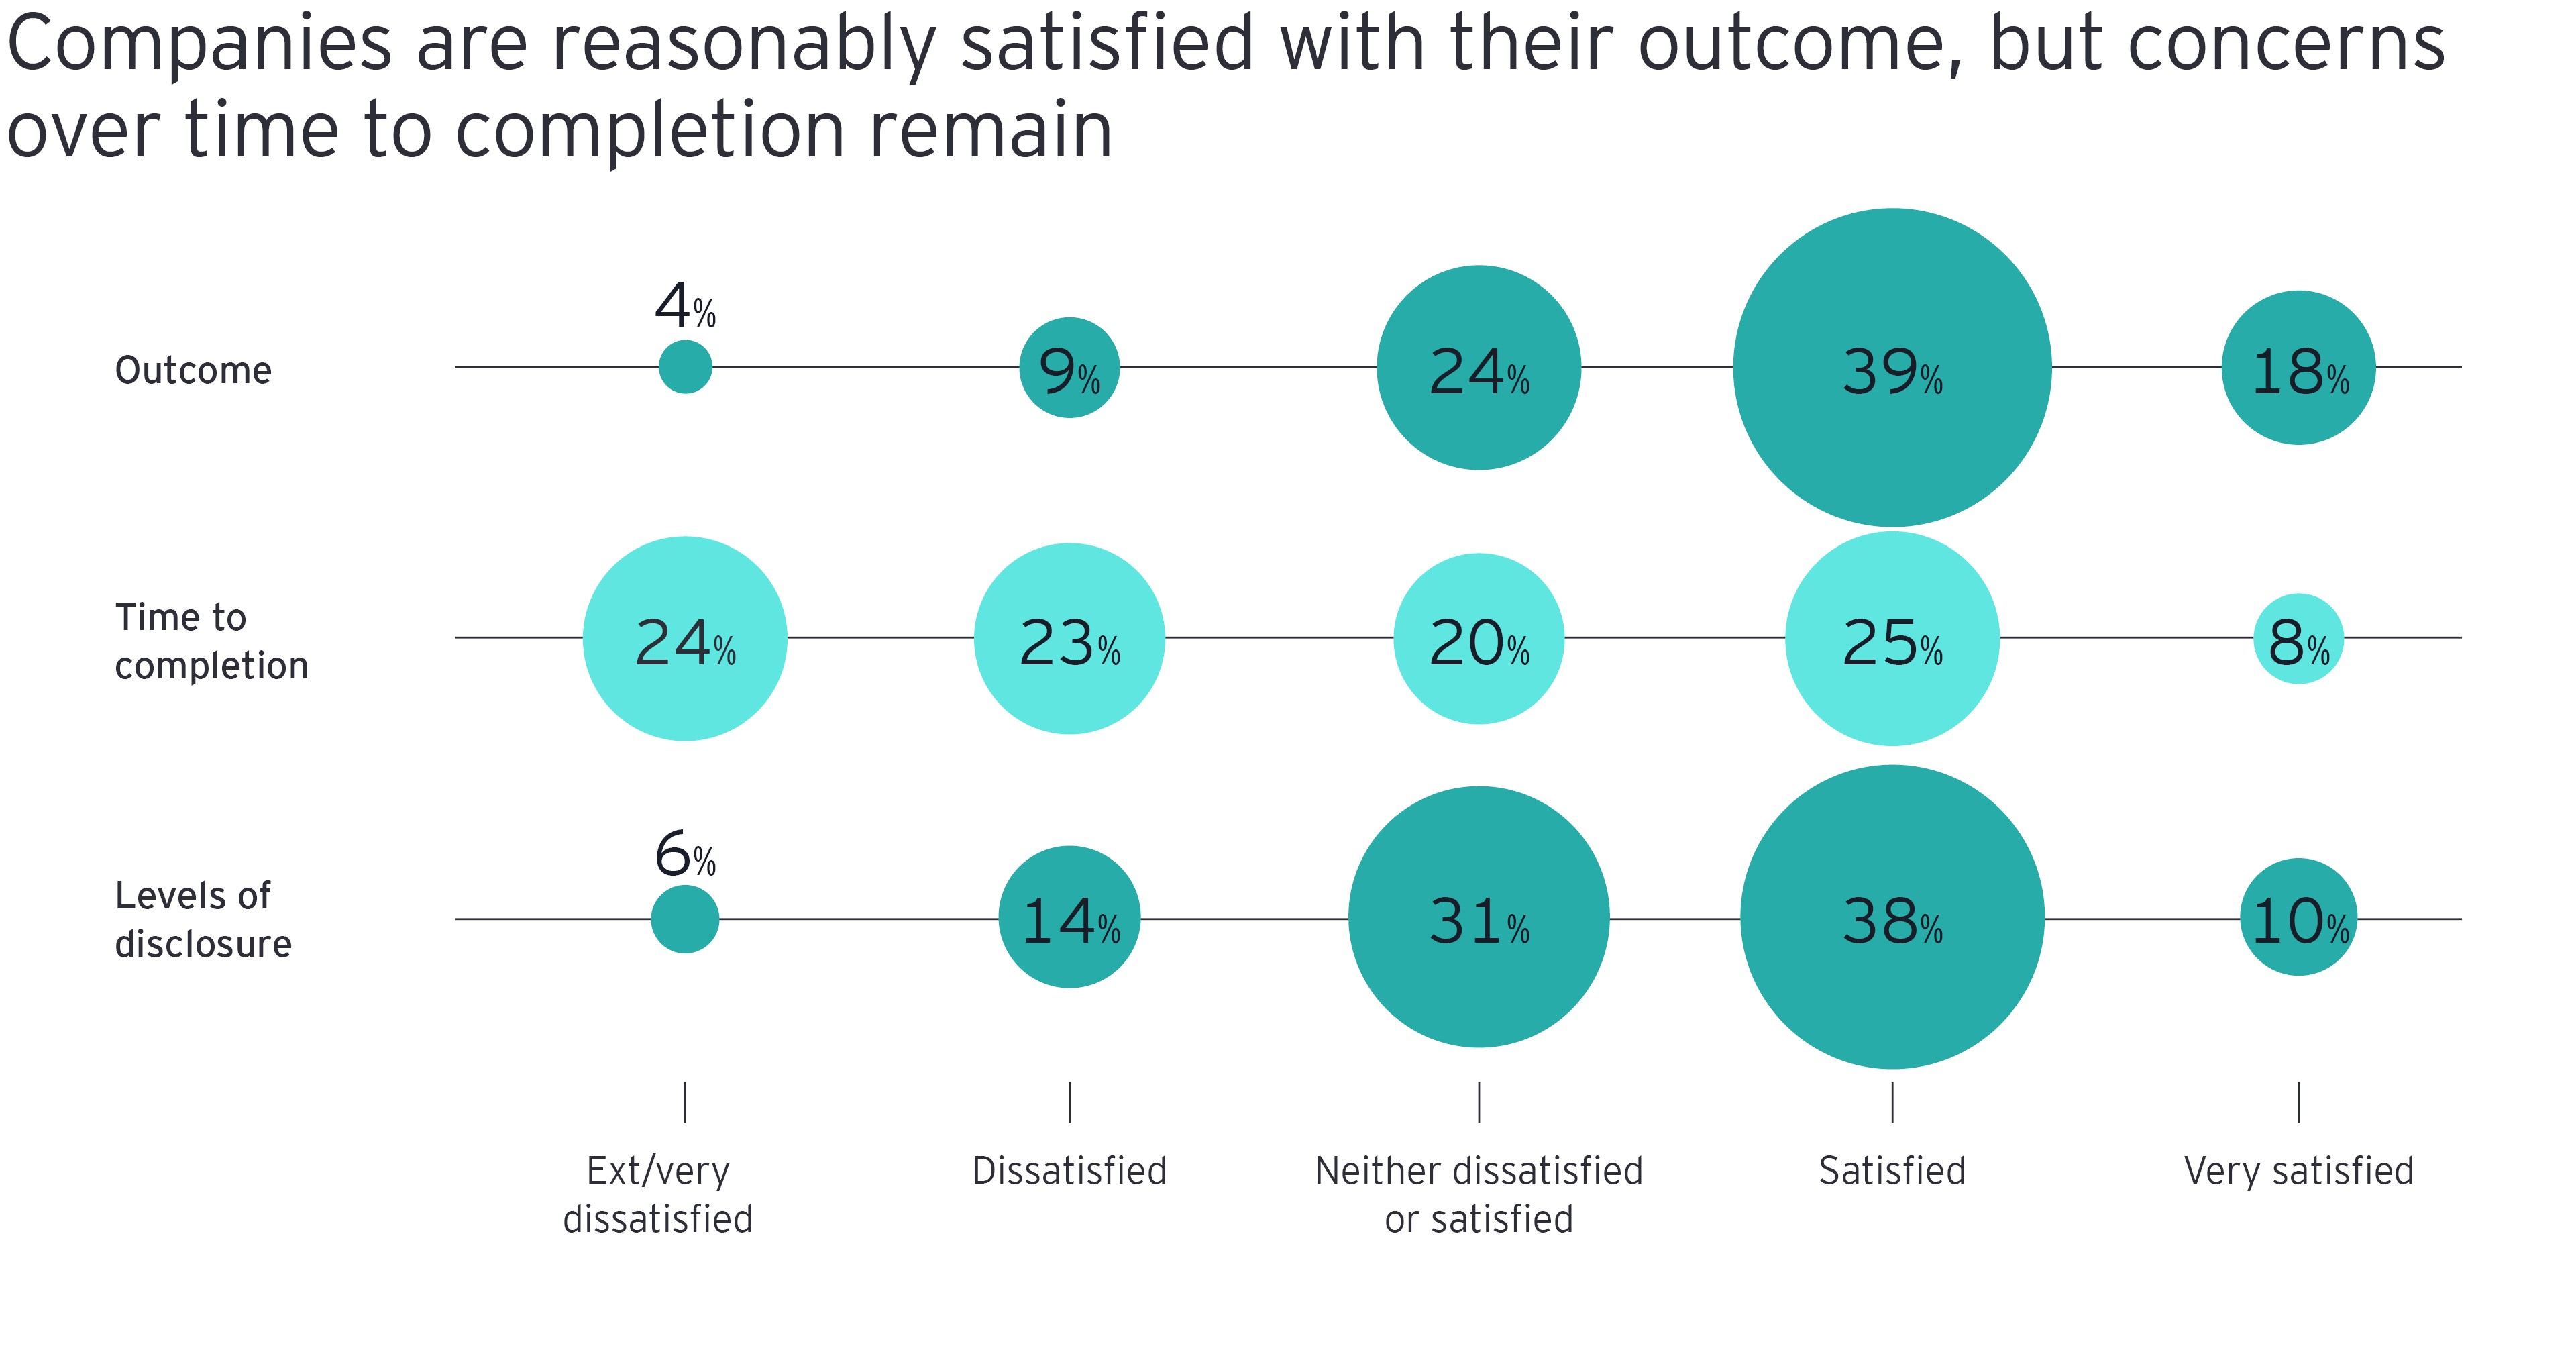 Companies are reasonably satisfied with their outcome